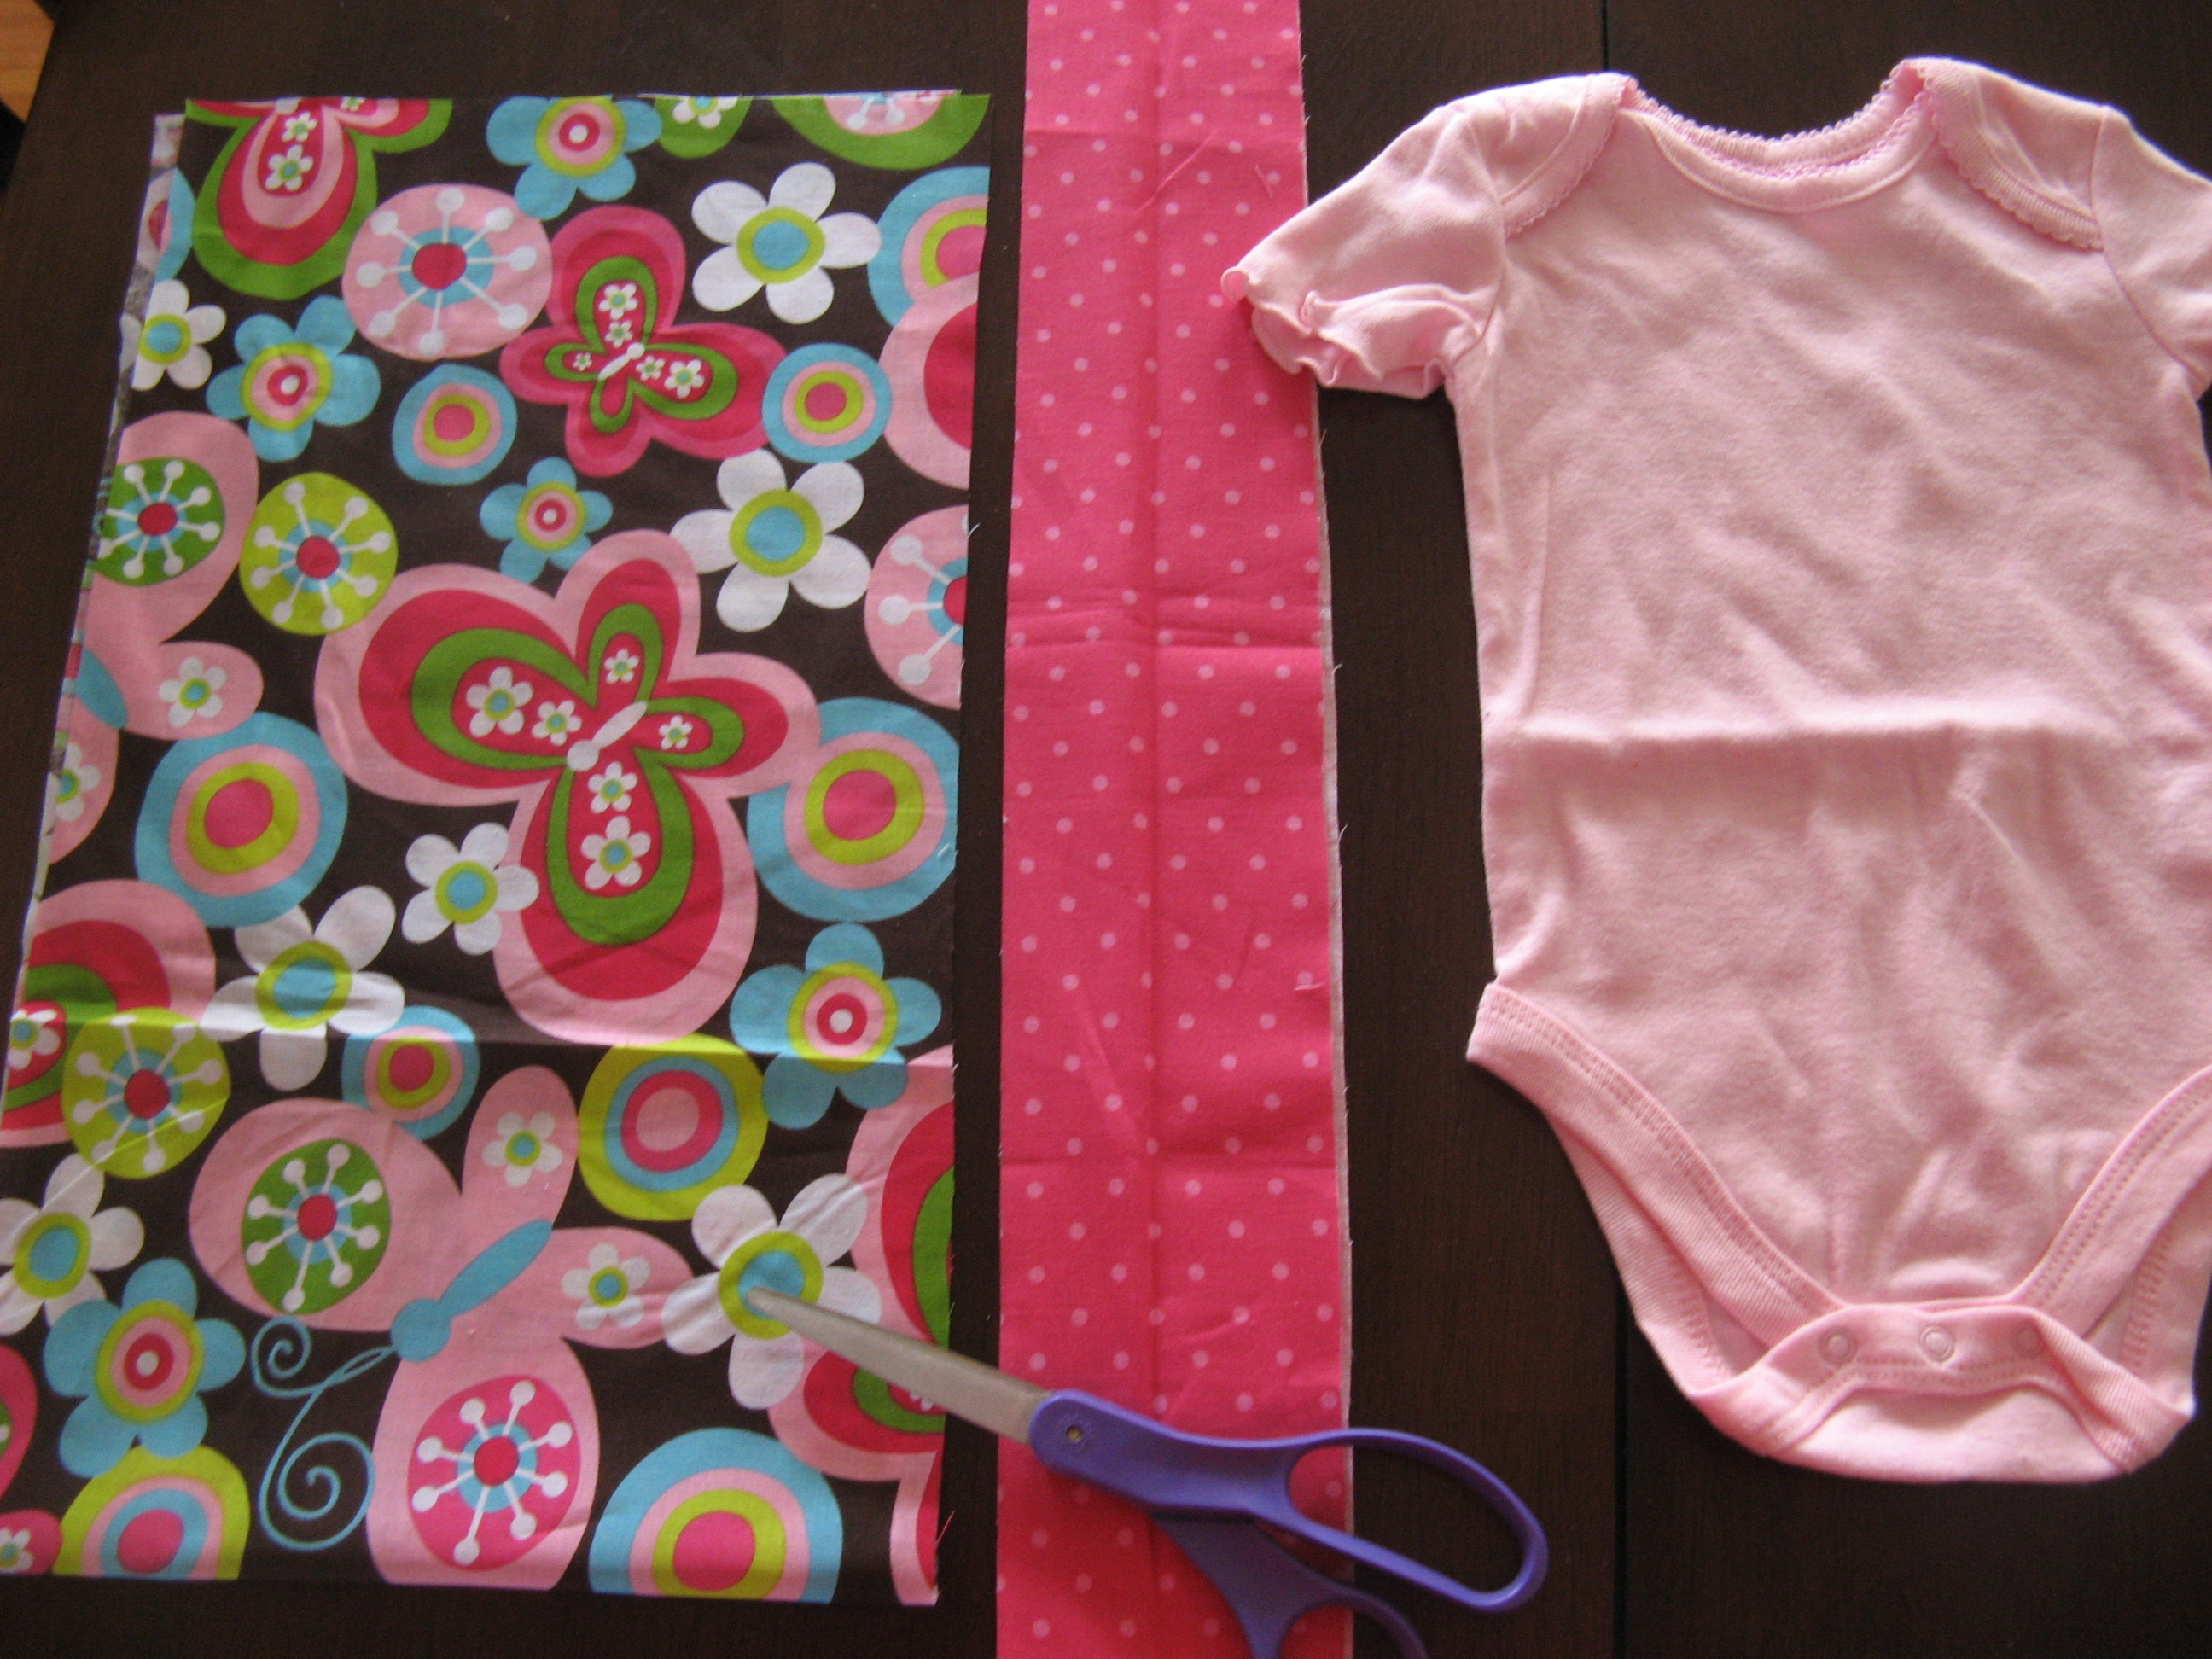 Best ideas about DIY Baby Clothing . Save or Pin DIY baby dress Now.